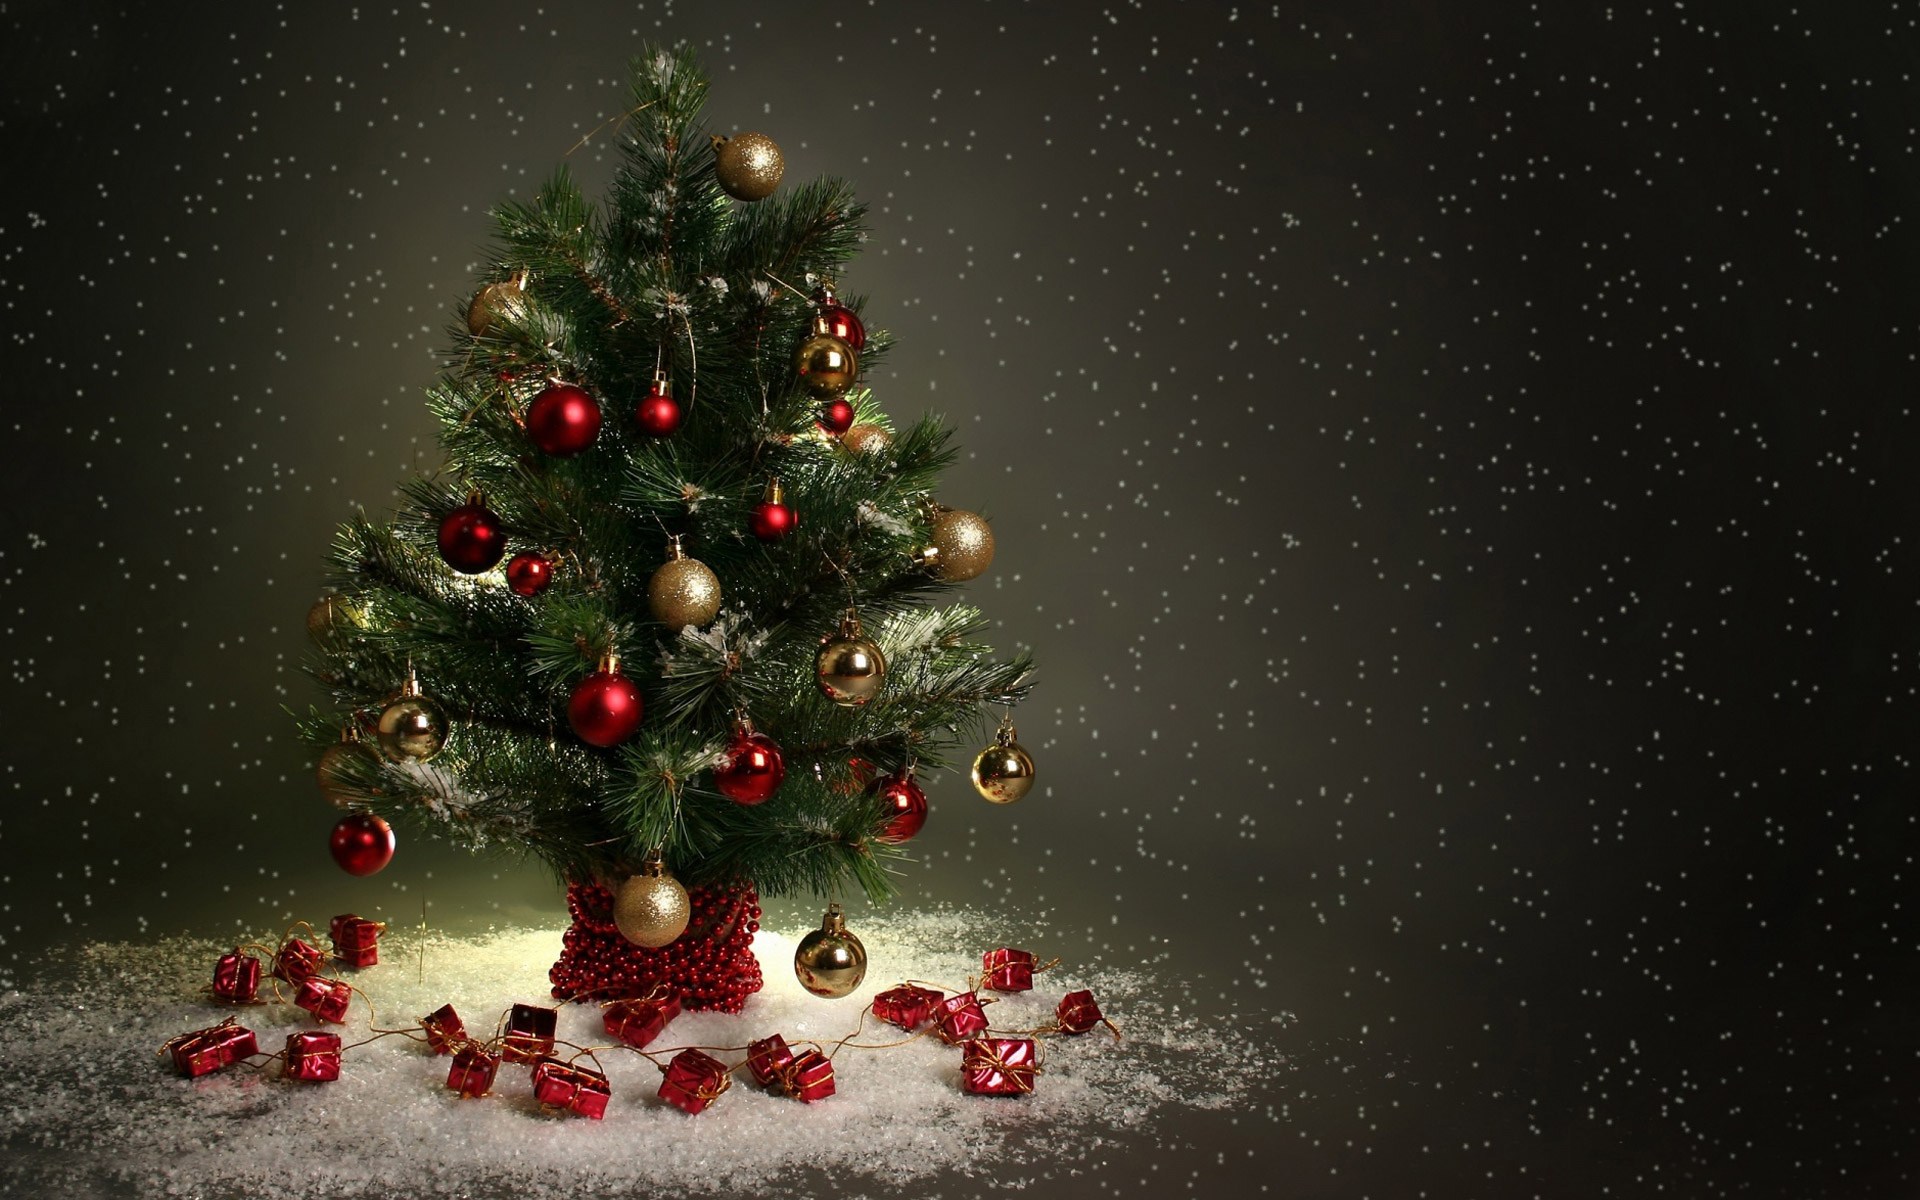 Merry Christmas HD Wallpapers, Image & Greetings [Free